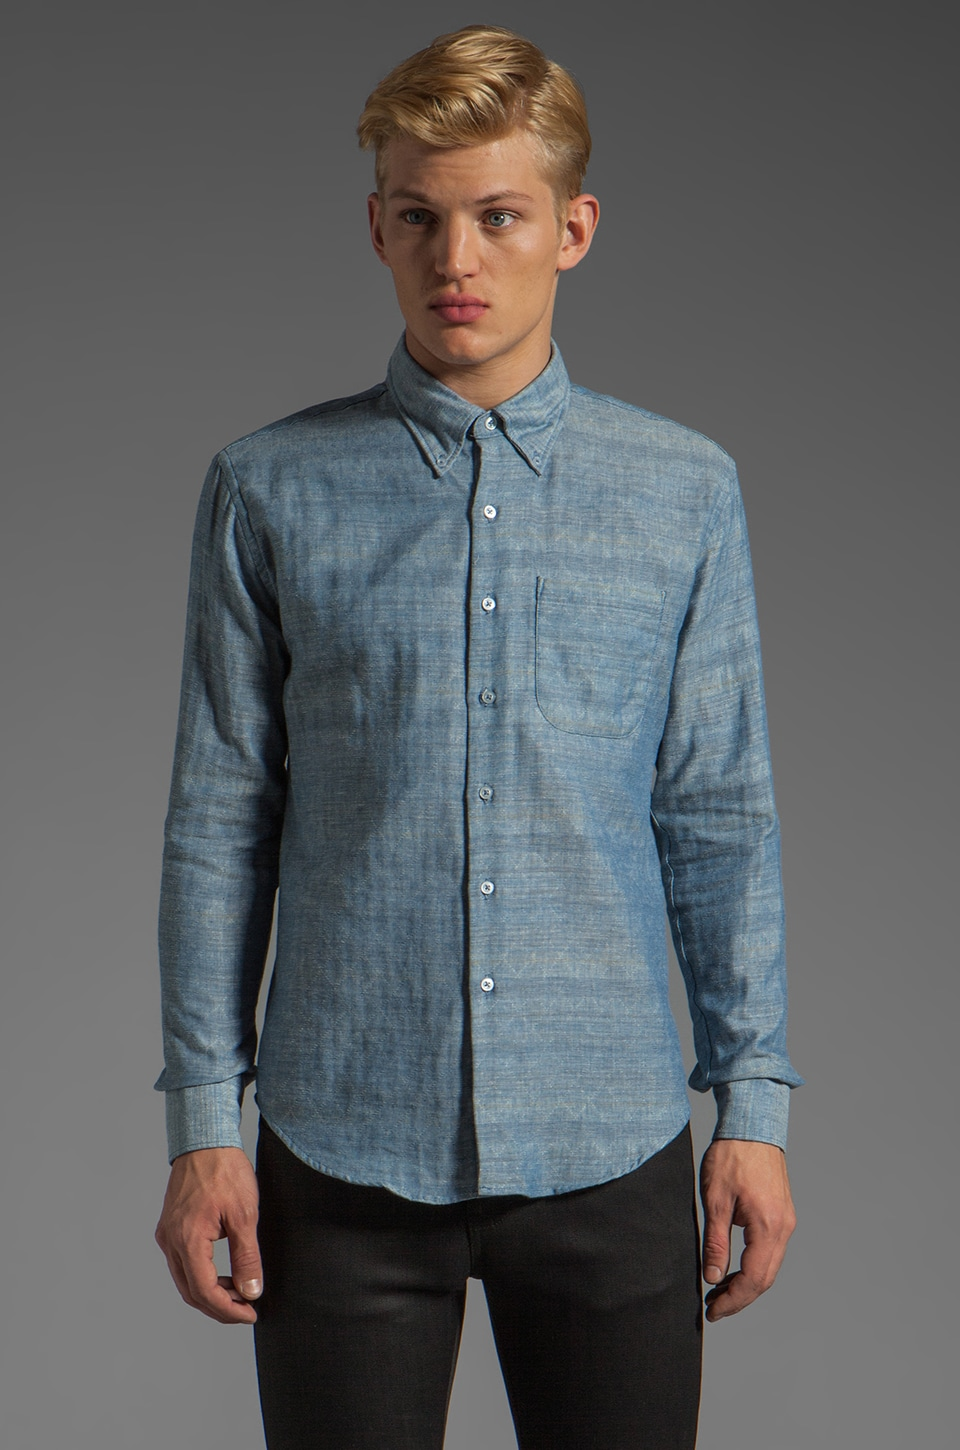 Naked & Famous Denim Slim Shirt 6 oz in Quilted Double Weave Blue